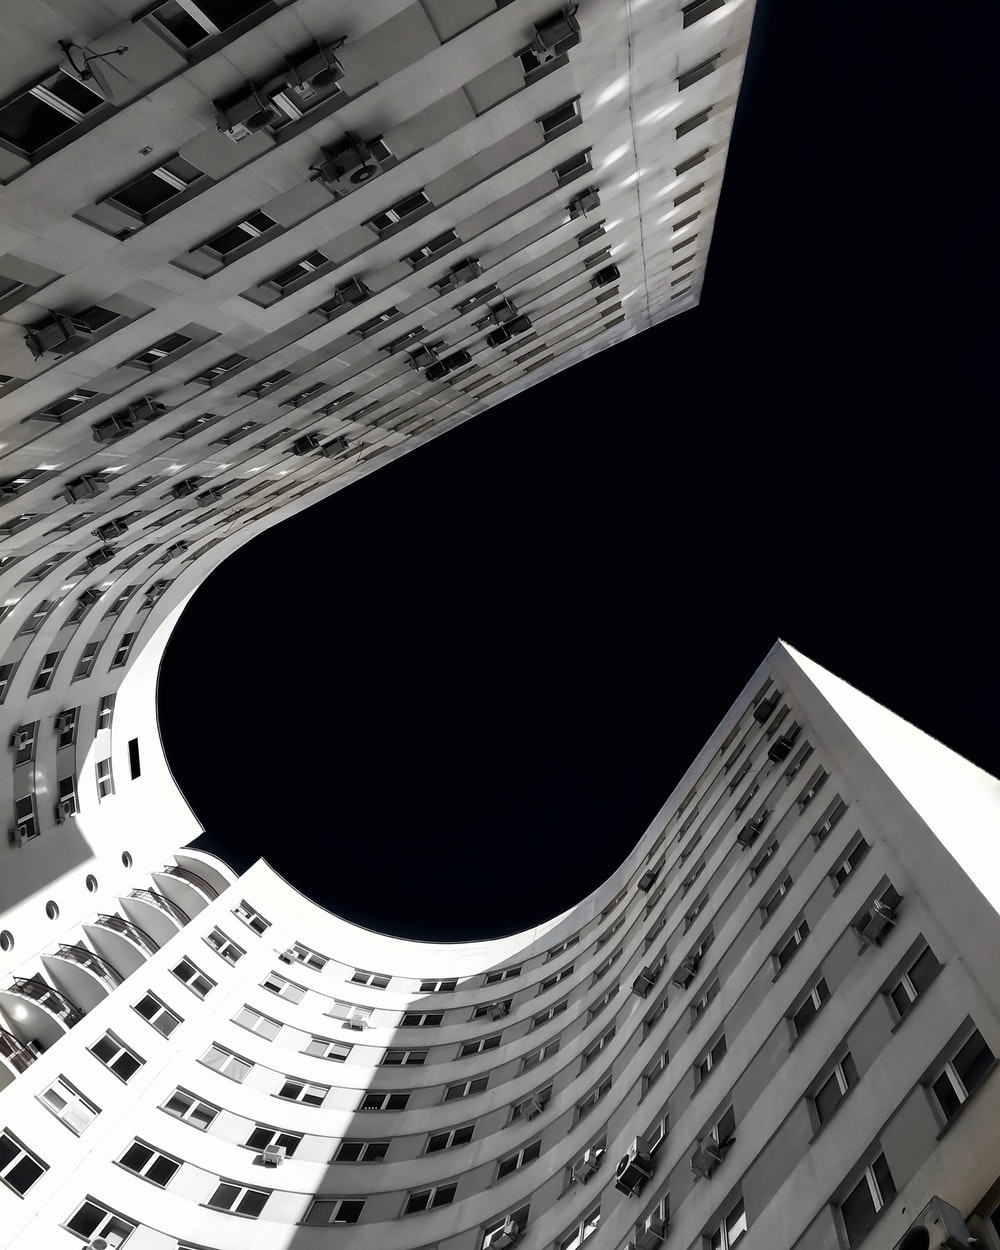 worm's-eye view photography of architectural building